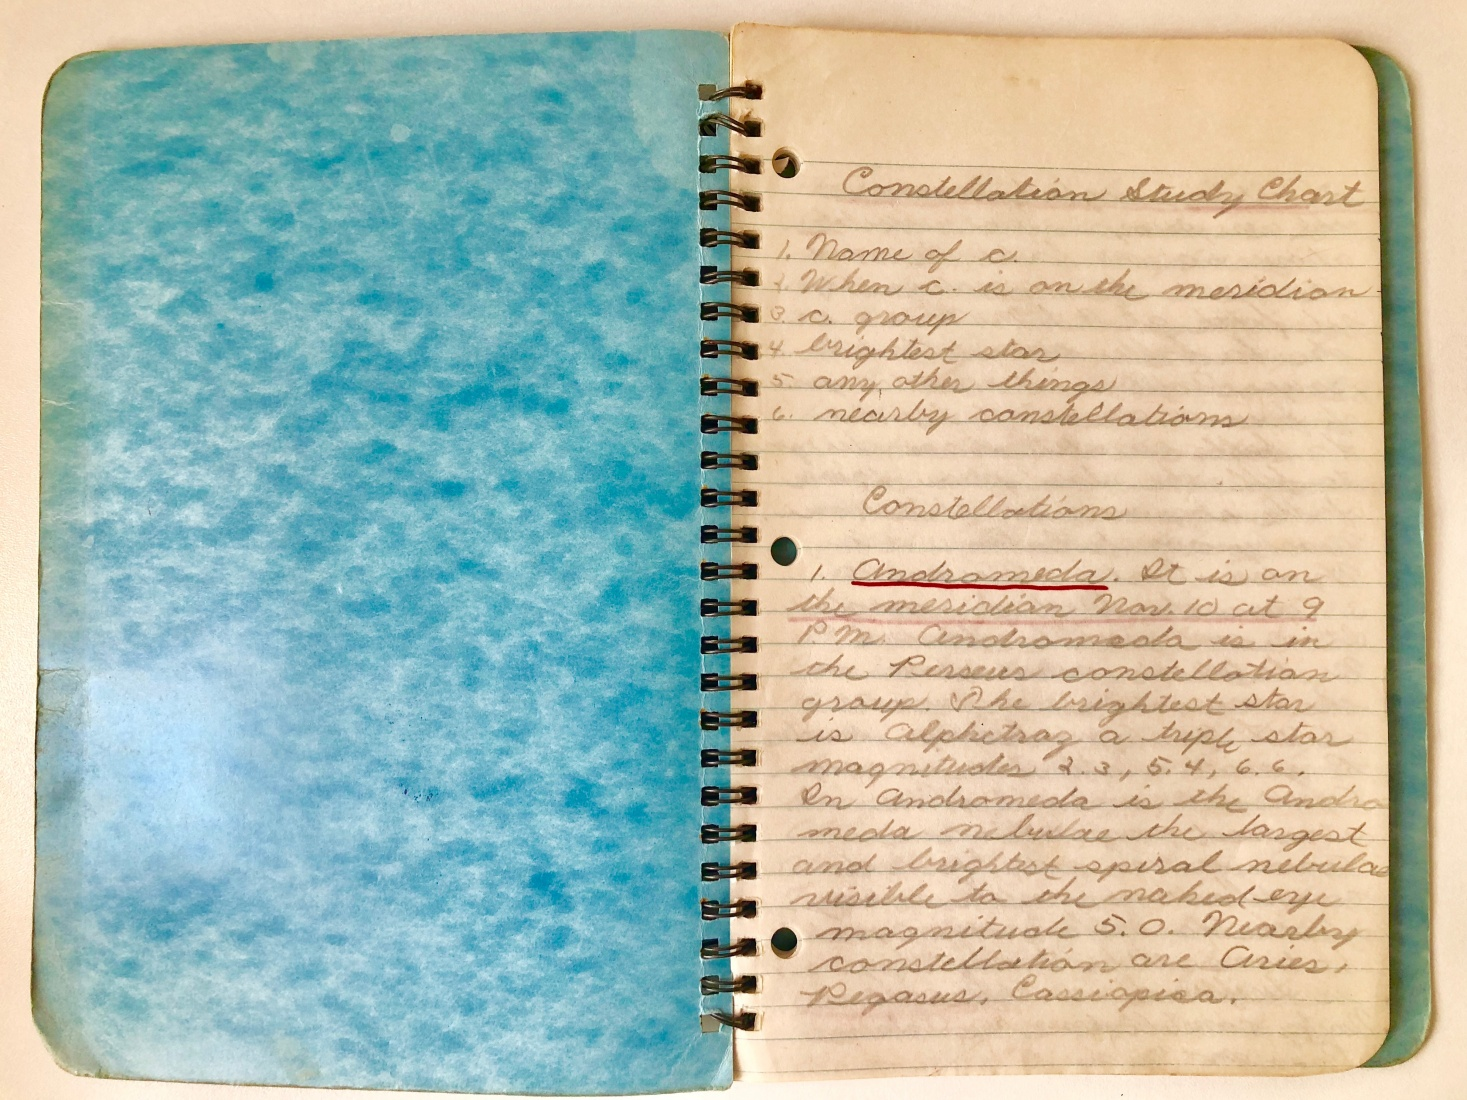 The first page of our book on astronomy. The top of the page shows the methodology. Photo by Mark Baker.